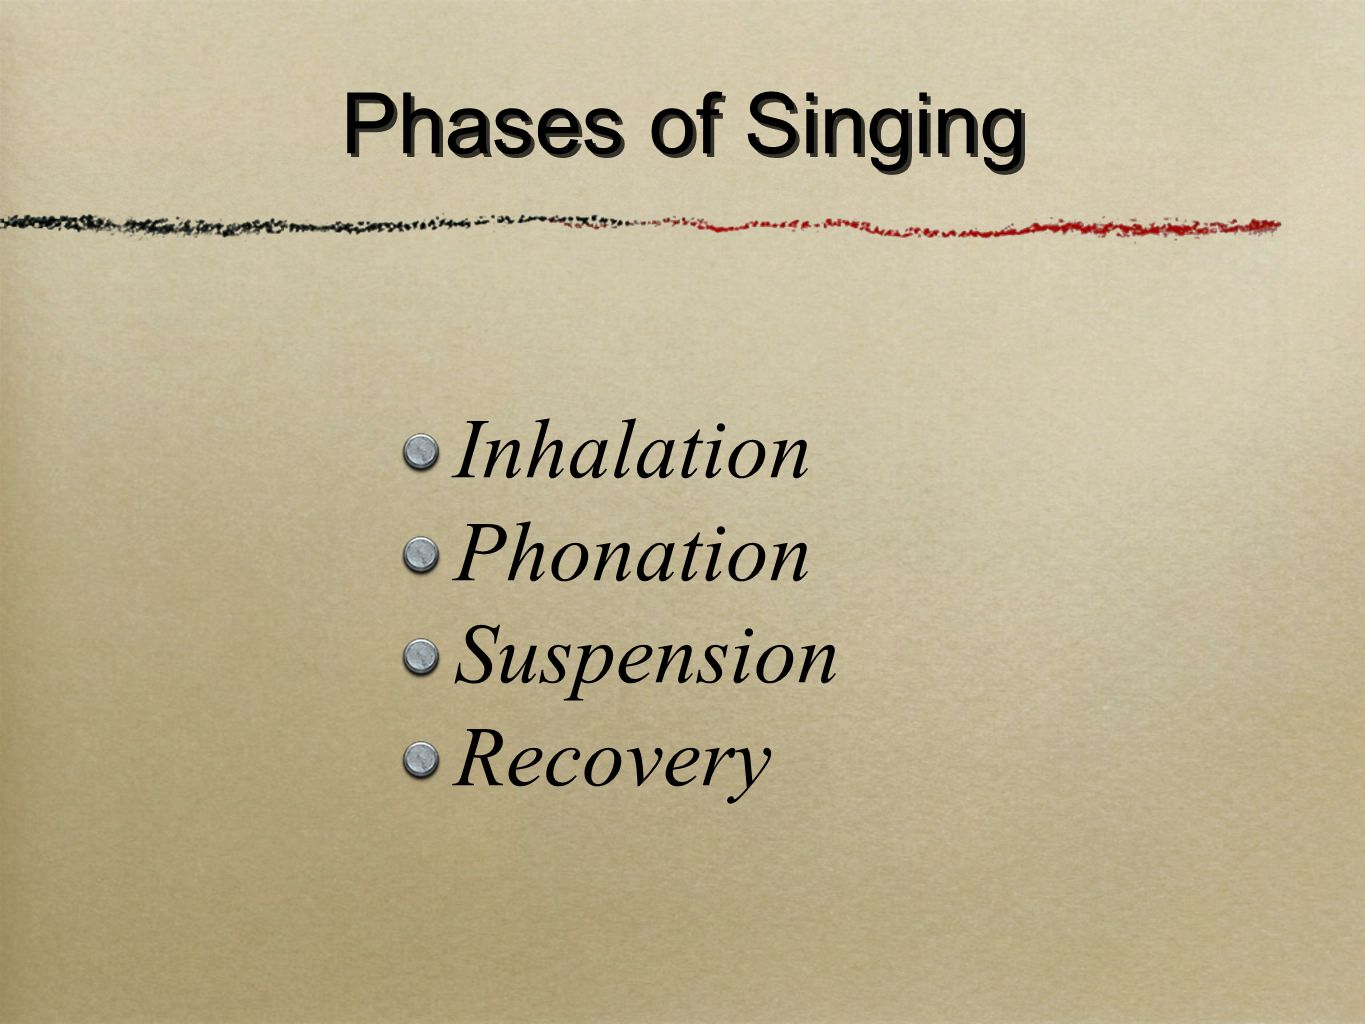 Inhalation Phonation Suspension Recovery Phases of Singing